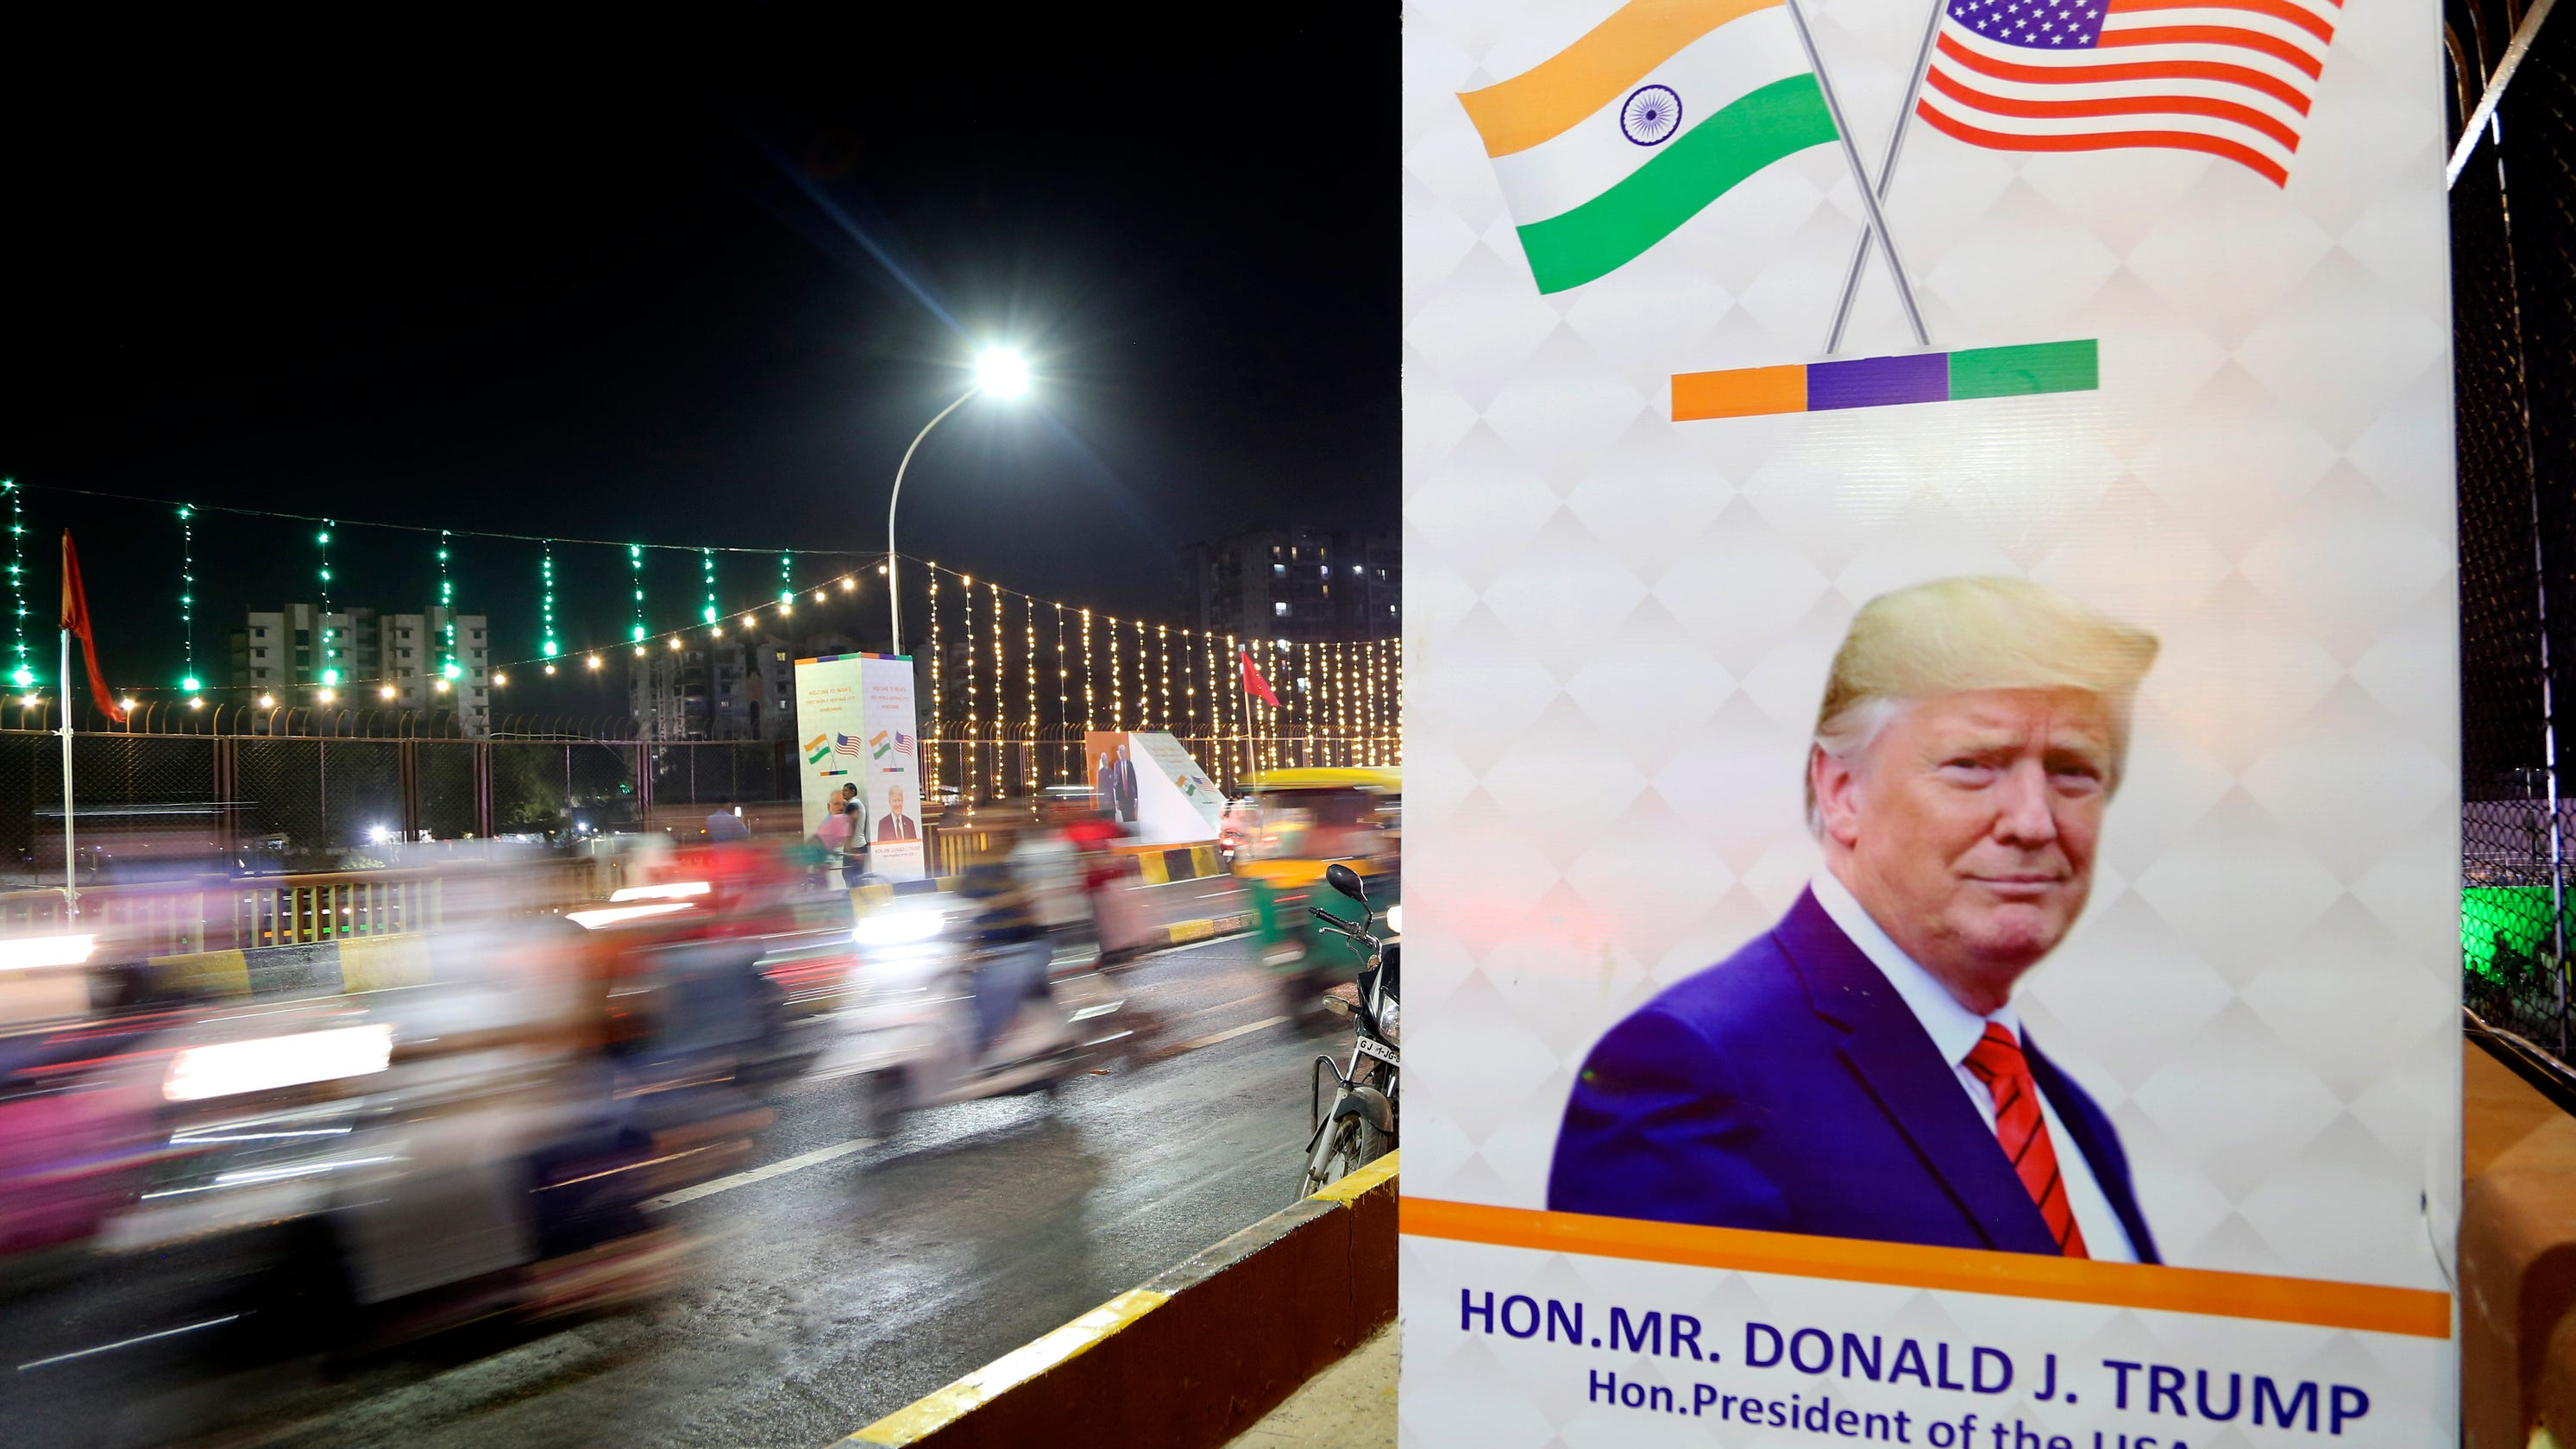 Trump set for his biggest rally crowd yet in whirlwind visit to India amid trade friction